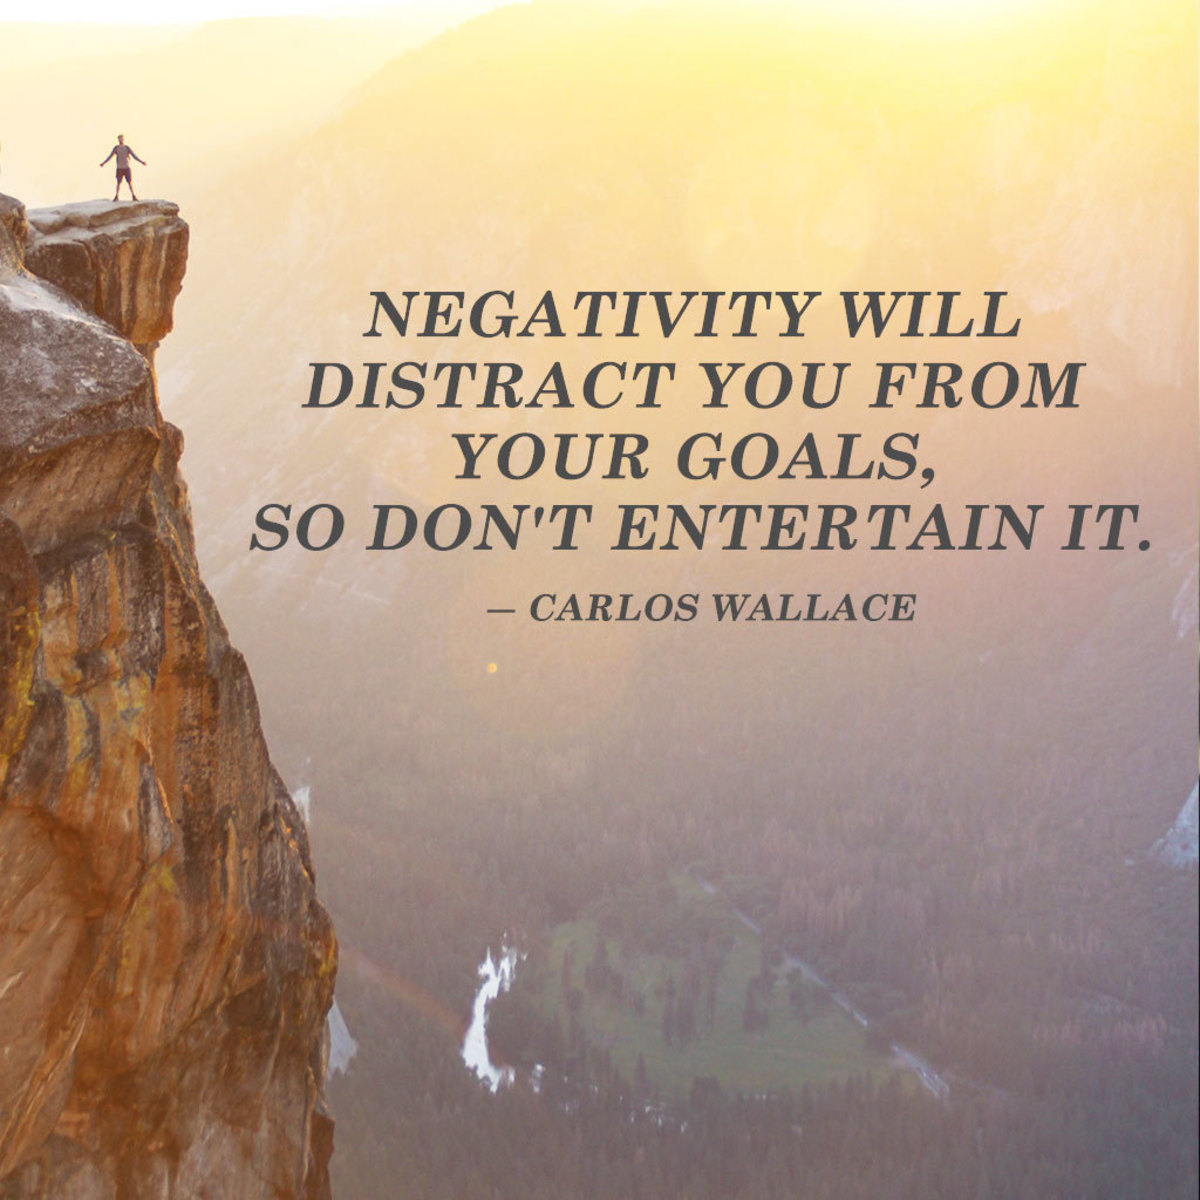 """""""Negativity will distract you from your goals, so don't entertain it."""" ― Carlos Wallace"""